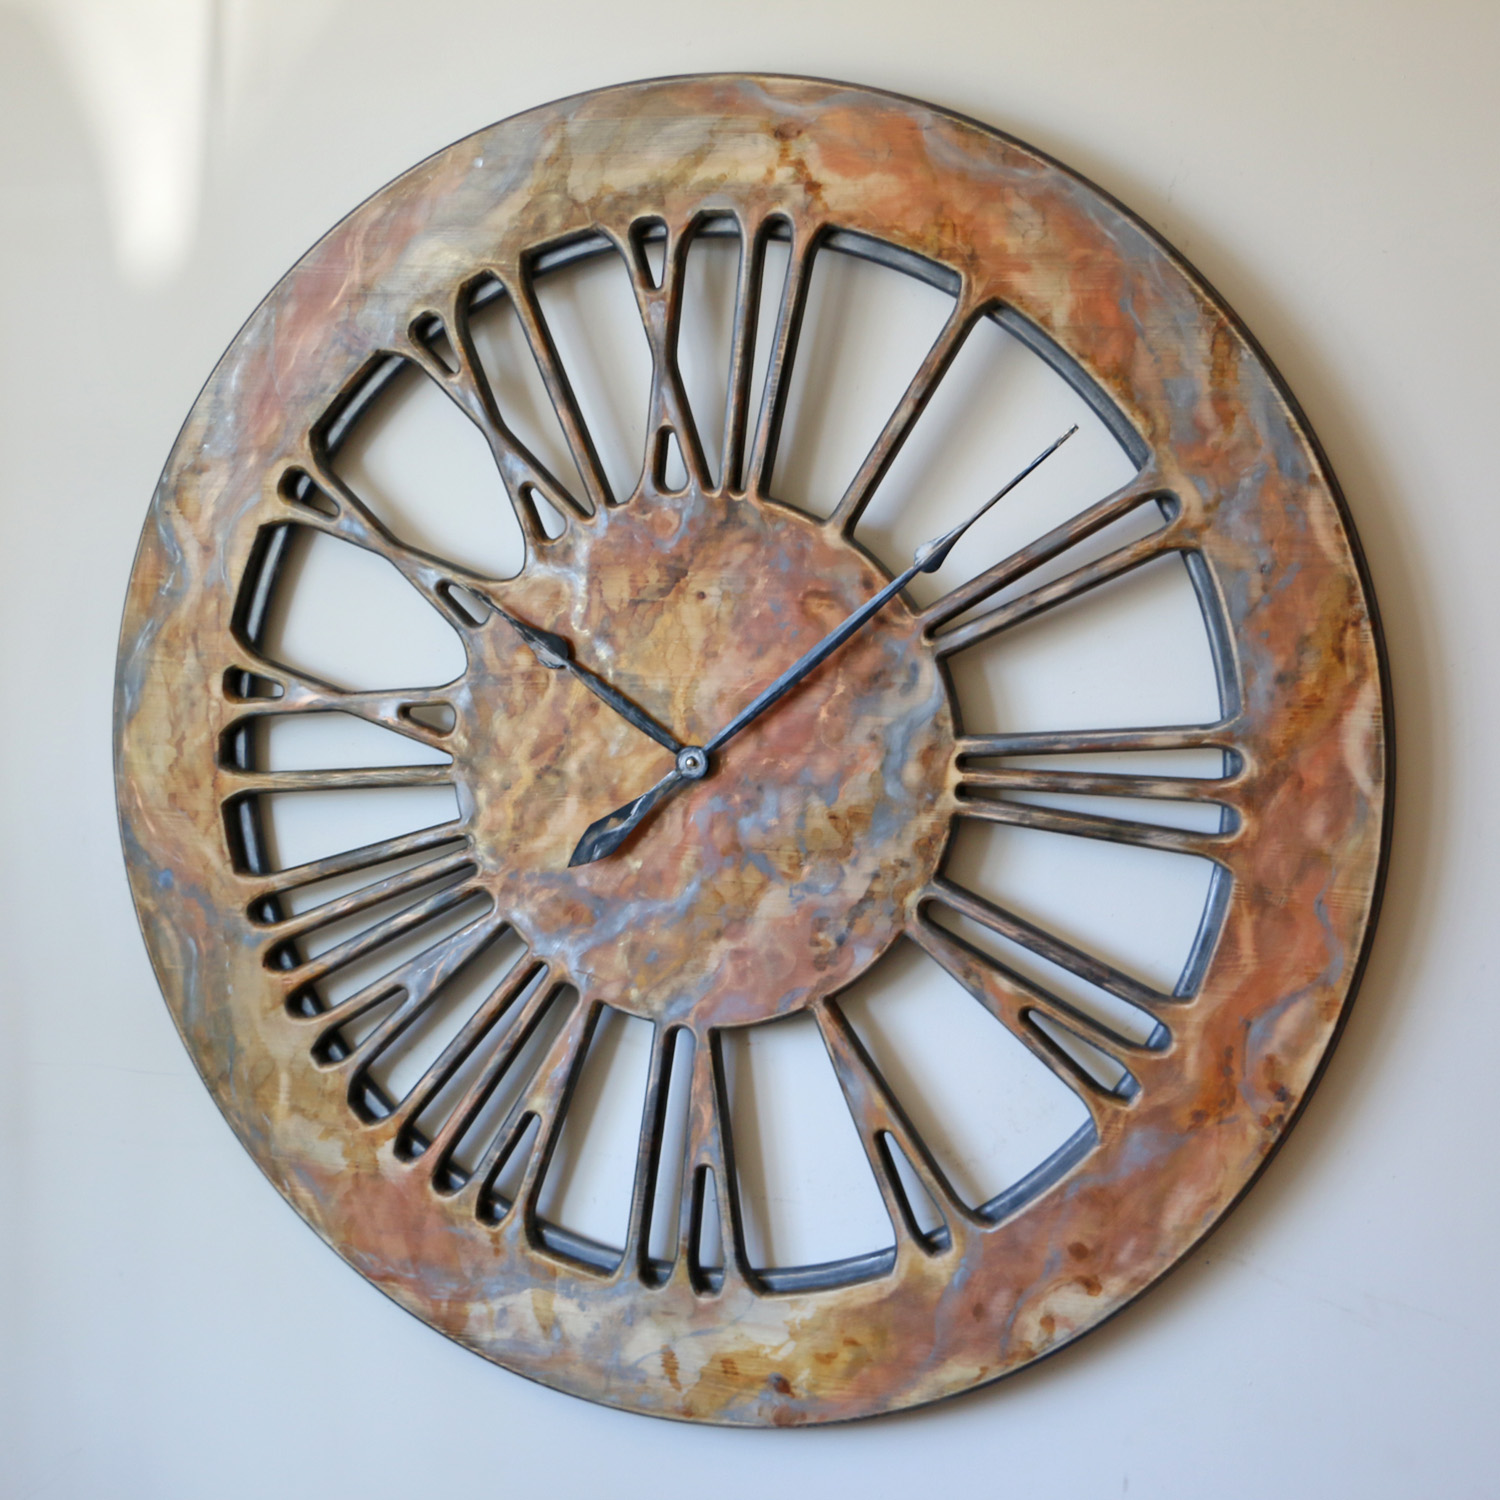 Beautiful Oversized Wall Clock Skeleton Roman Numeral Design